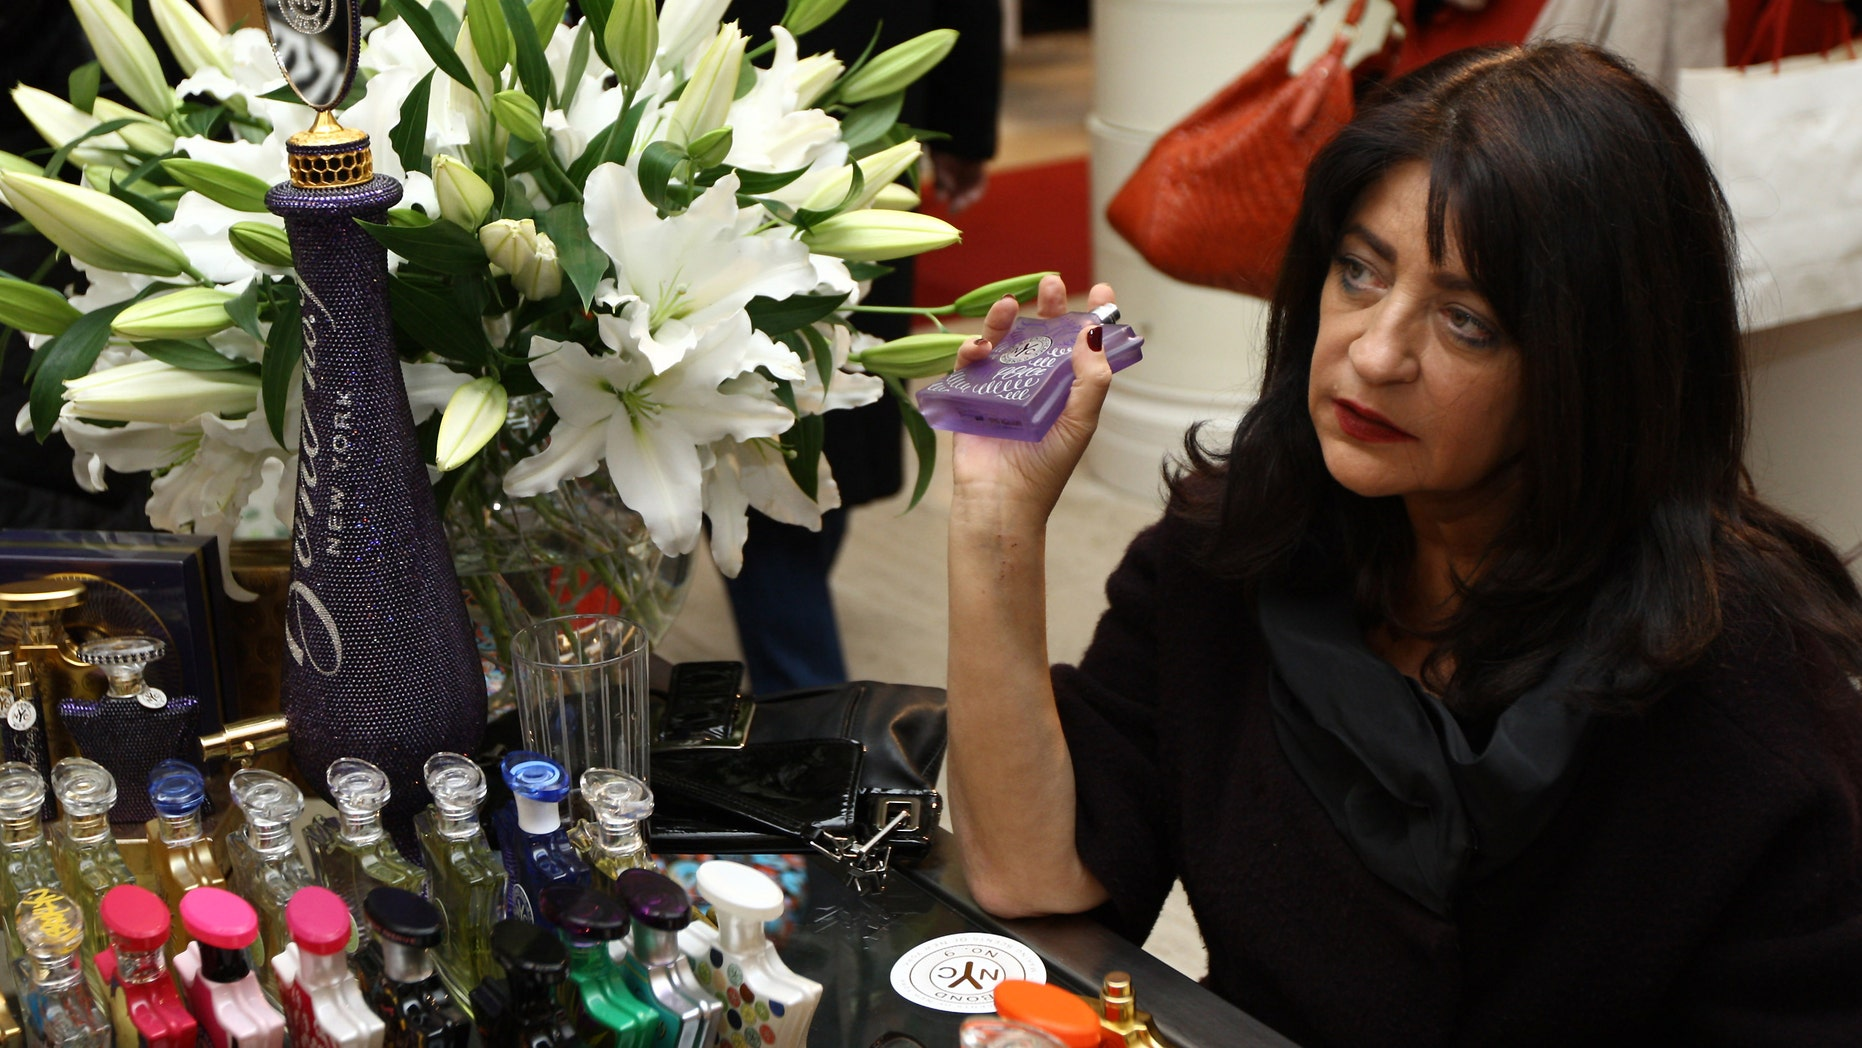 NEW YORK - DECEMBER 19: Laurice Rahme signs bottles of her Bond No. 9 perfume for the 'Ultimate NY Gift' at Saks Fifth Avenue on December 19, 2009 in New York City. (Photo by Neilson Barnard/Getty Images for Bond No. 9)